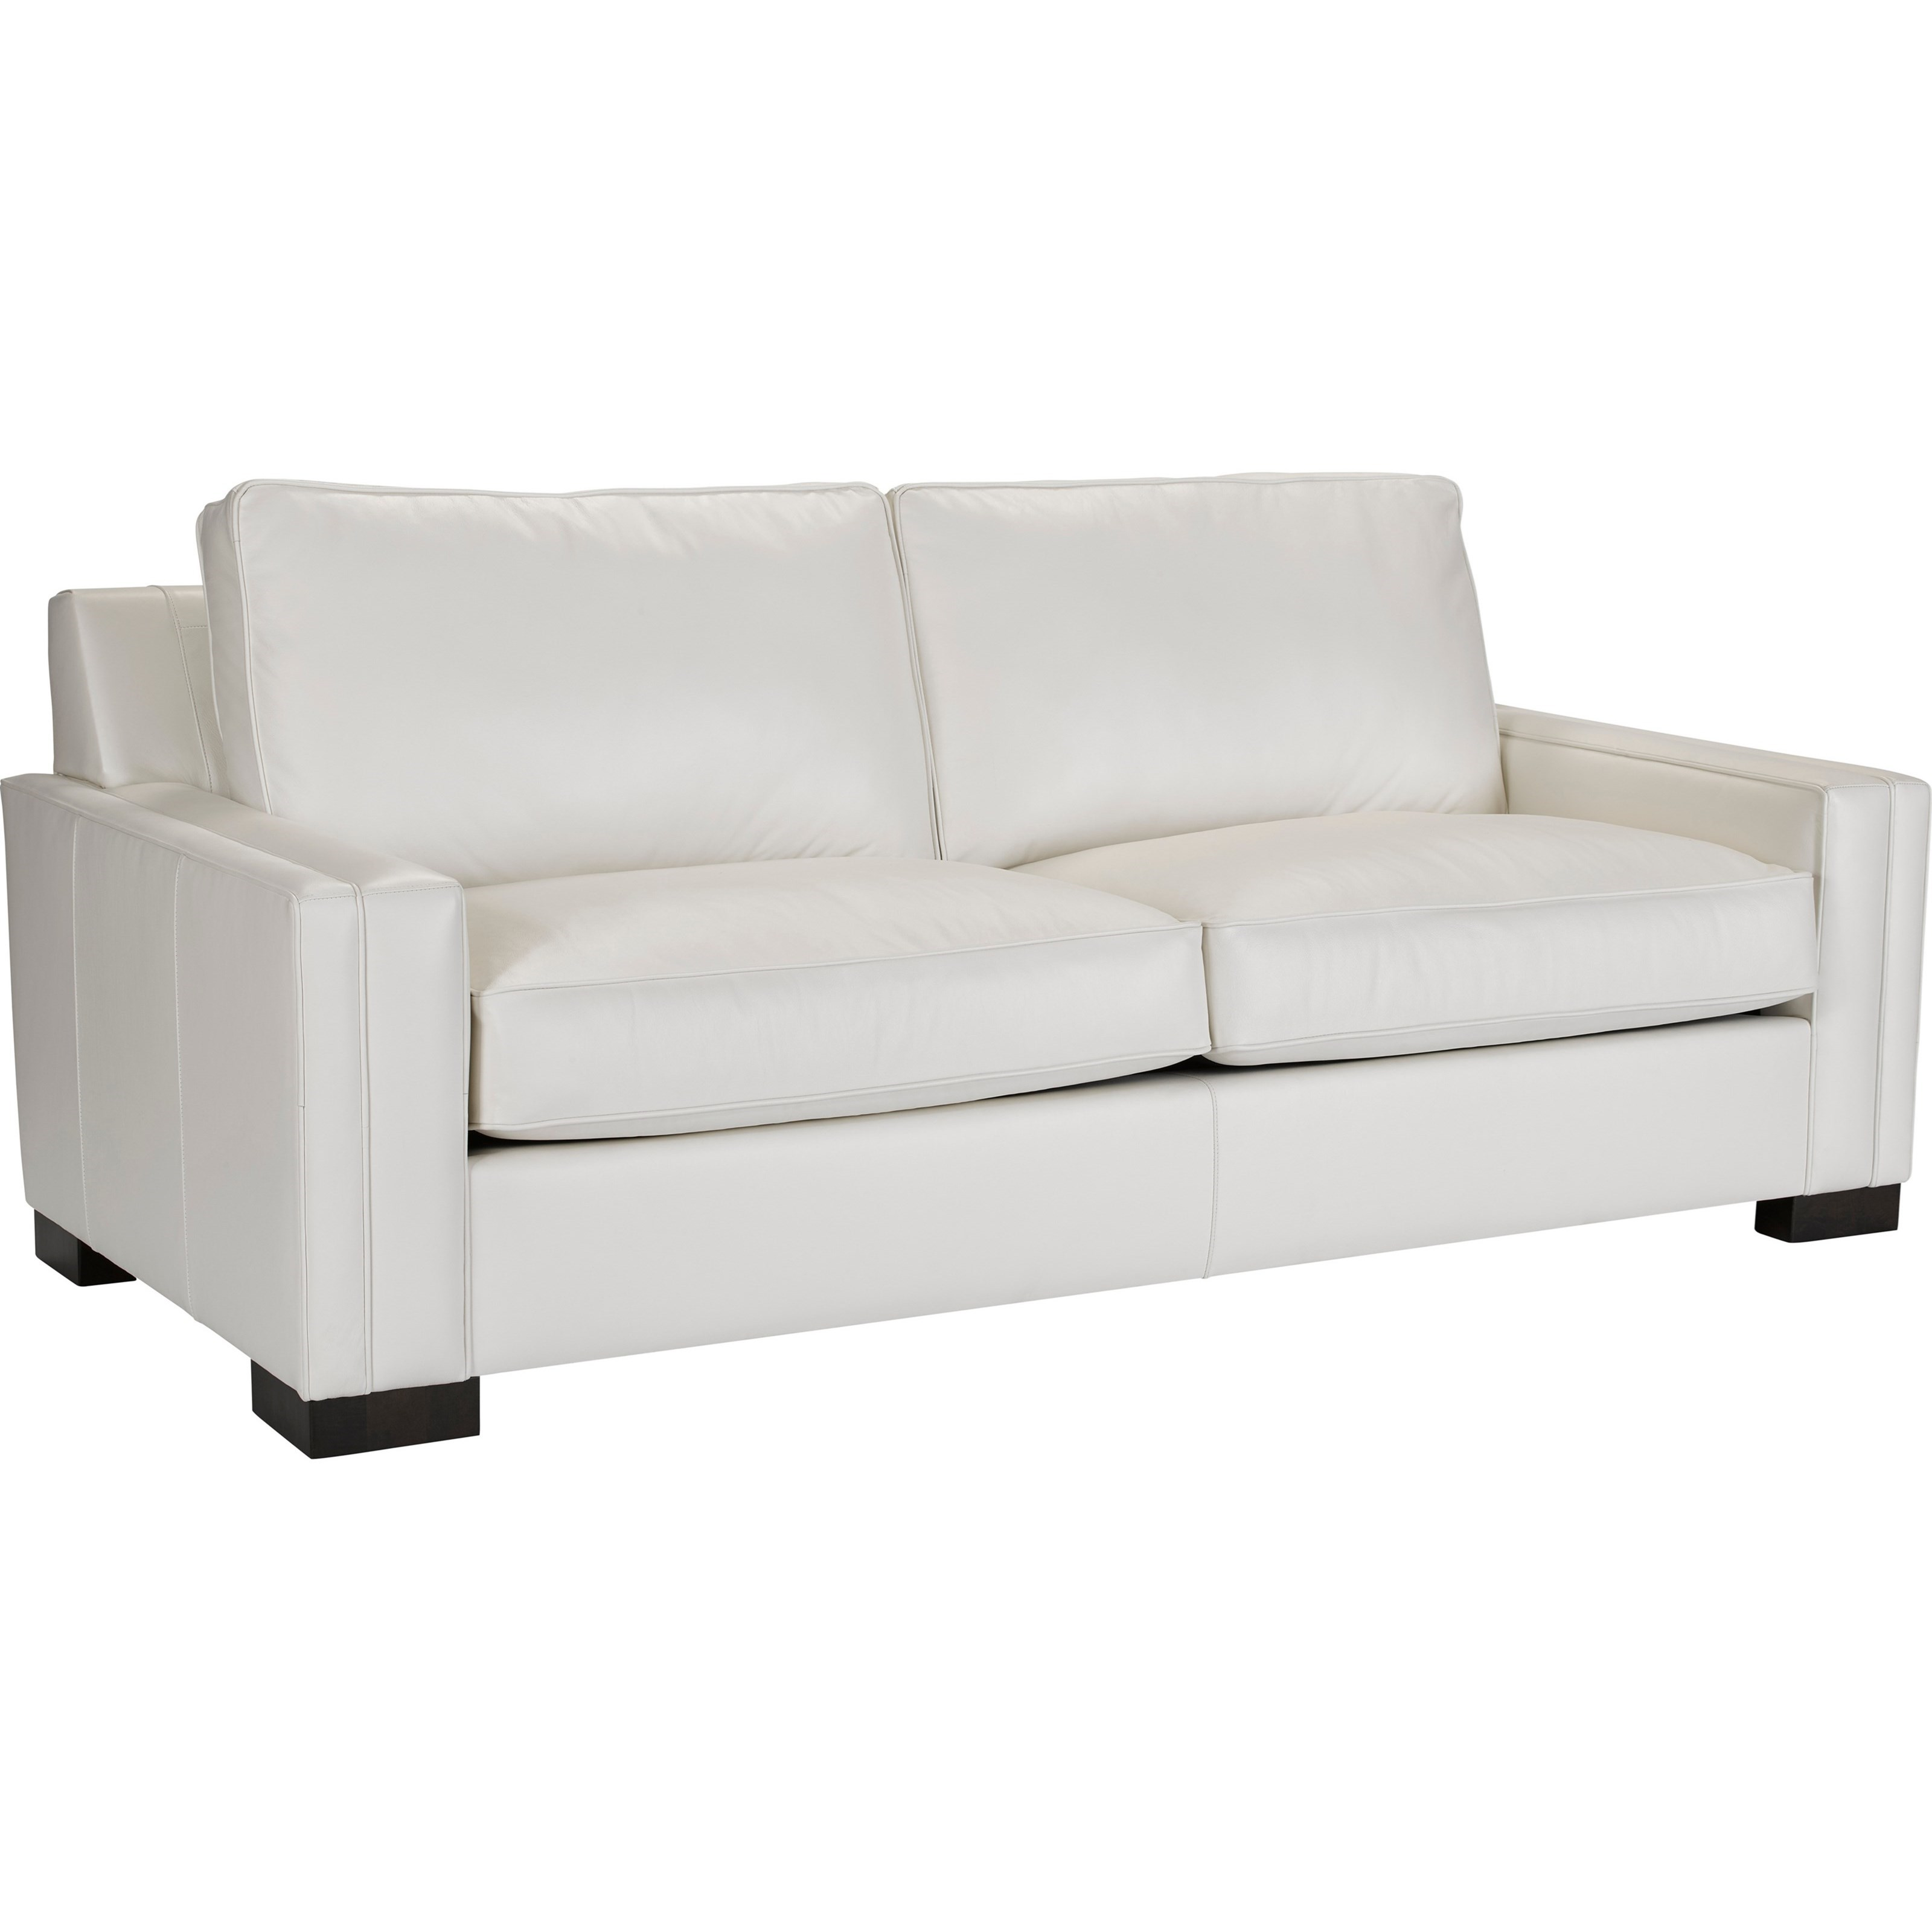 Broyhill Furniture Rocco Apartment Sofa With Sleek Track